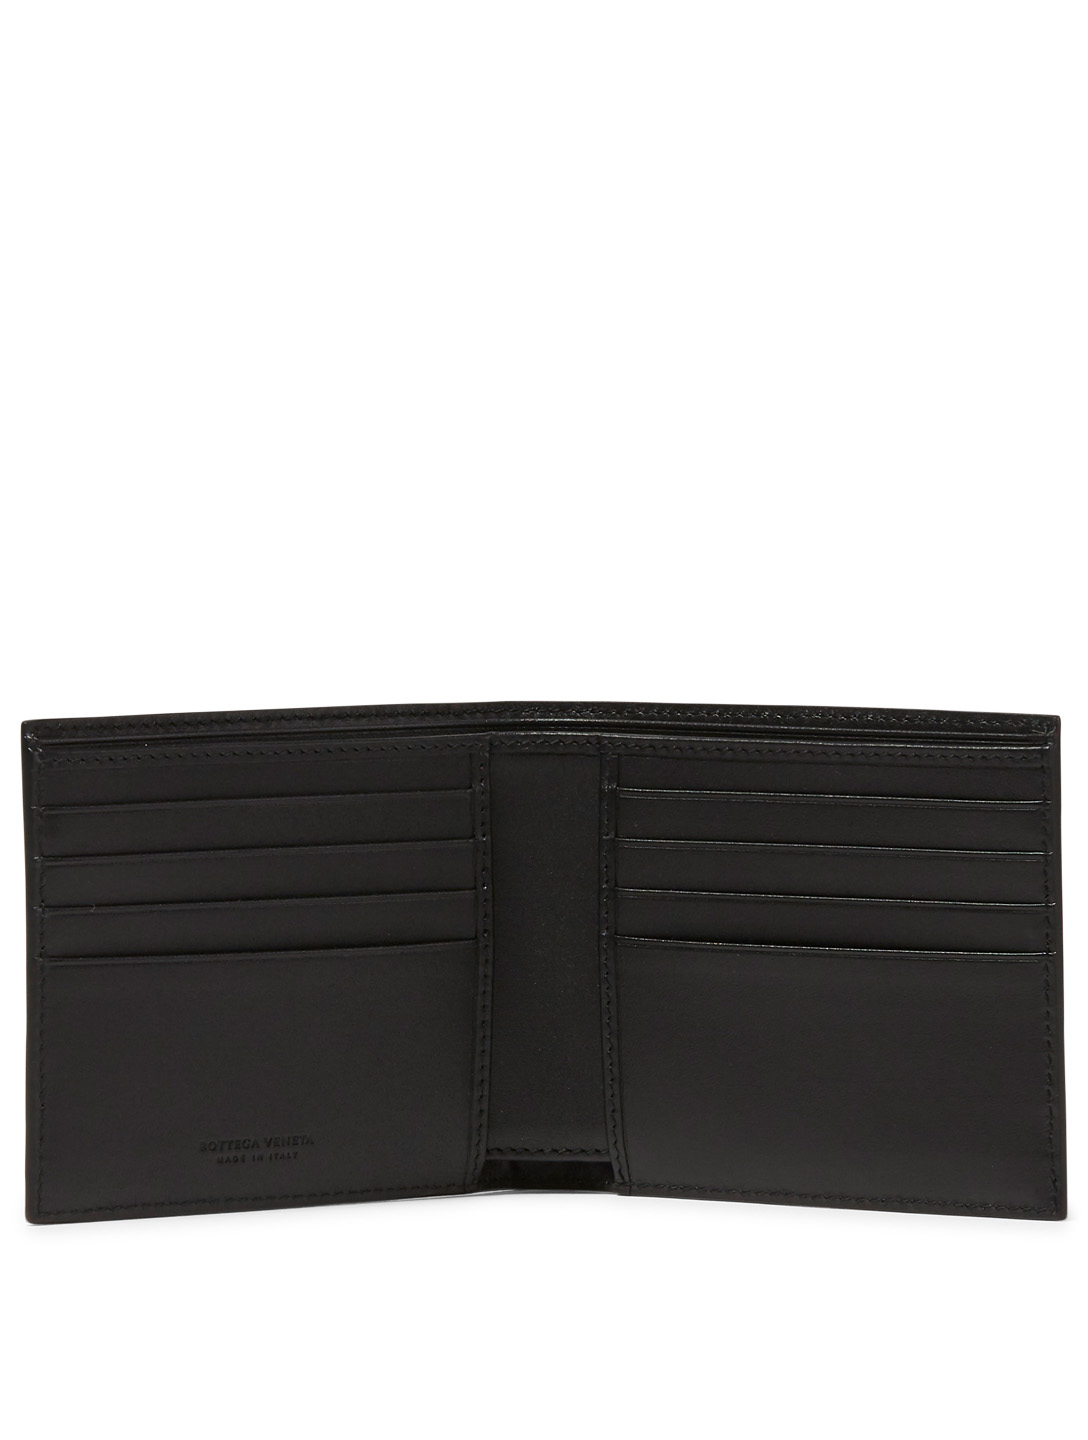 BOTTEGA VENETA Intrecciato Leather Bifold Wallet Men's Black